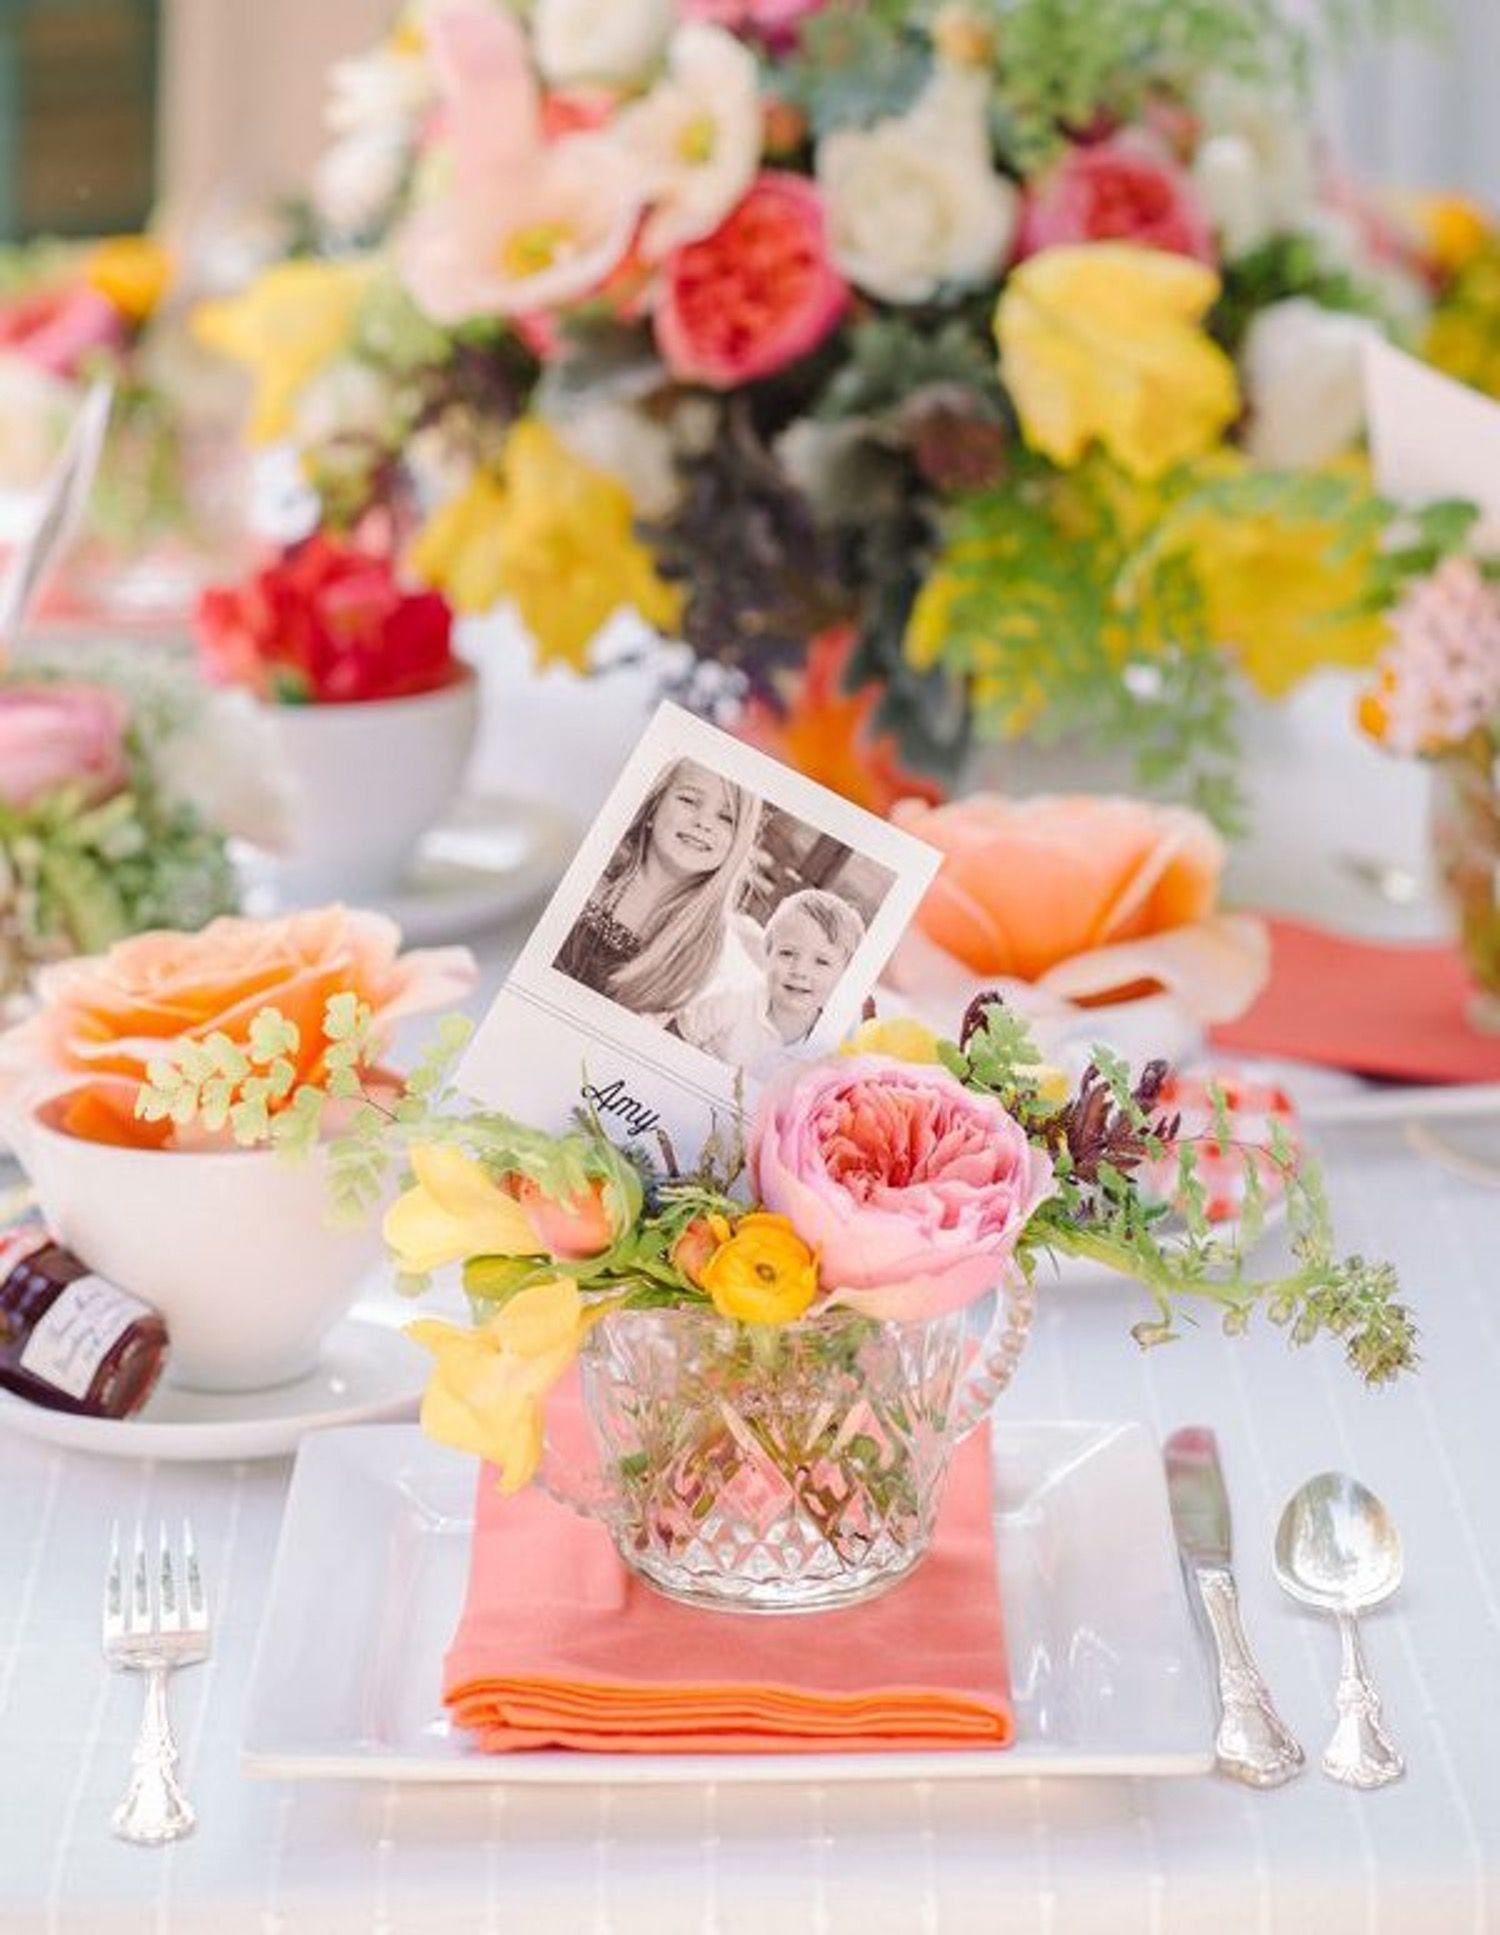 15 Mothers Day Brunch Diy Decor Ideas Party Pinterest Feestje